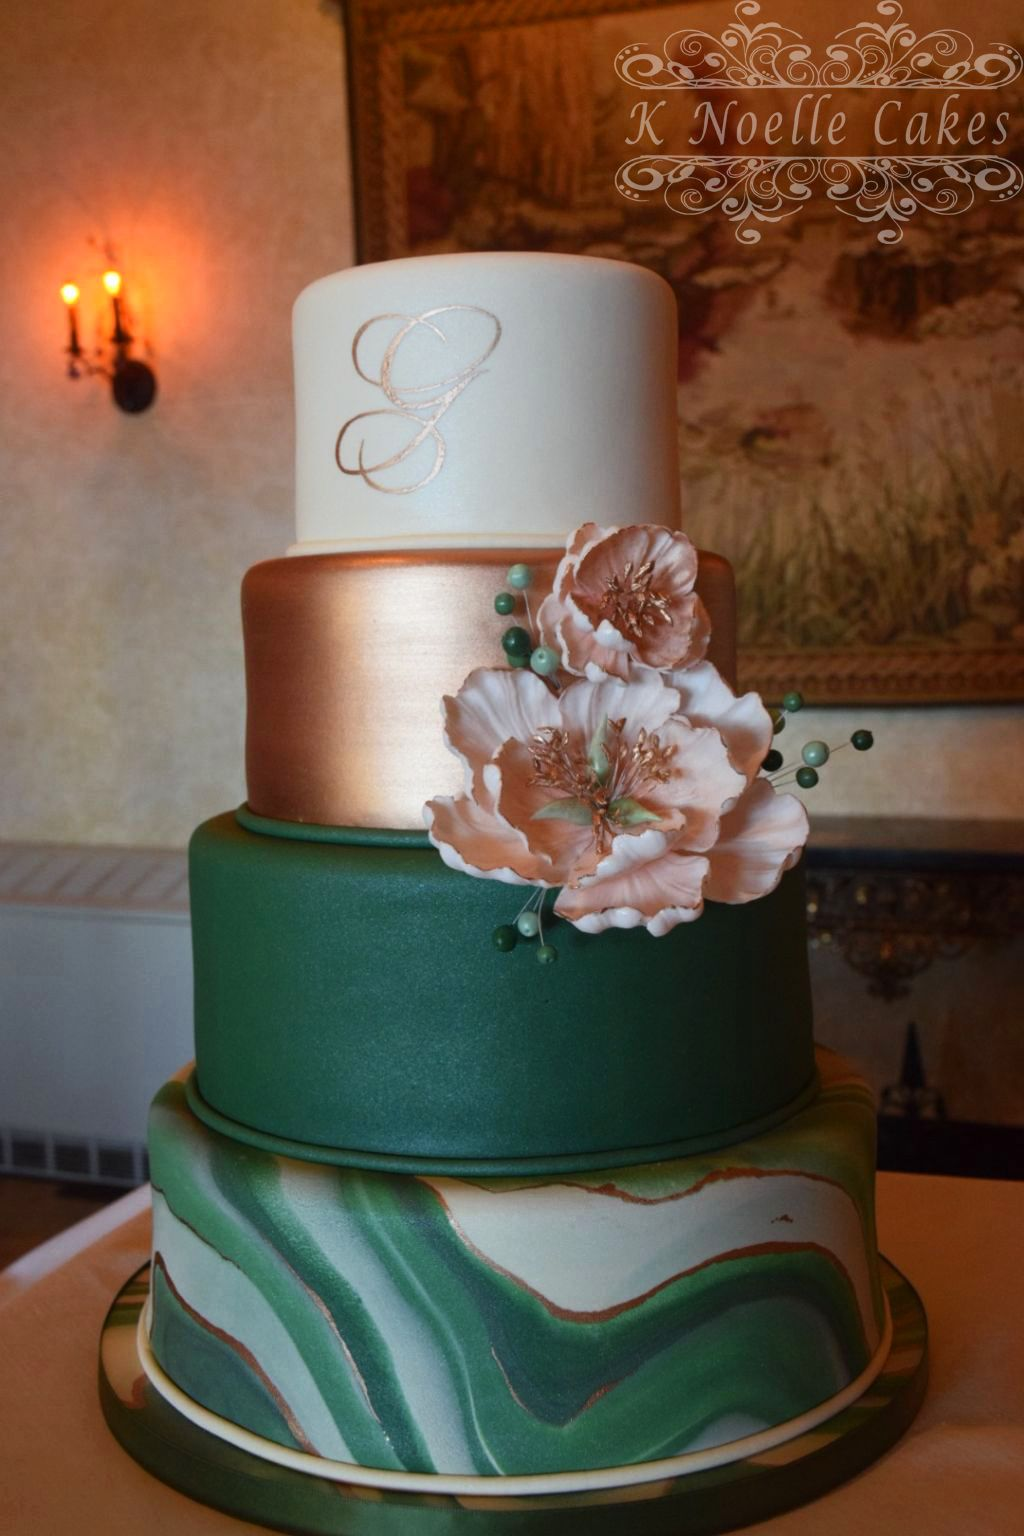 Rose gold/Hunter green and Marbled wedding cake by K Noelle